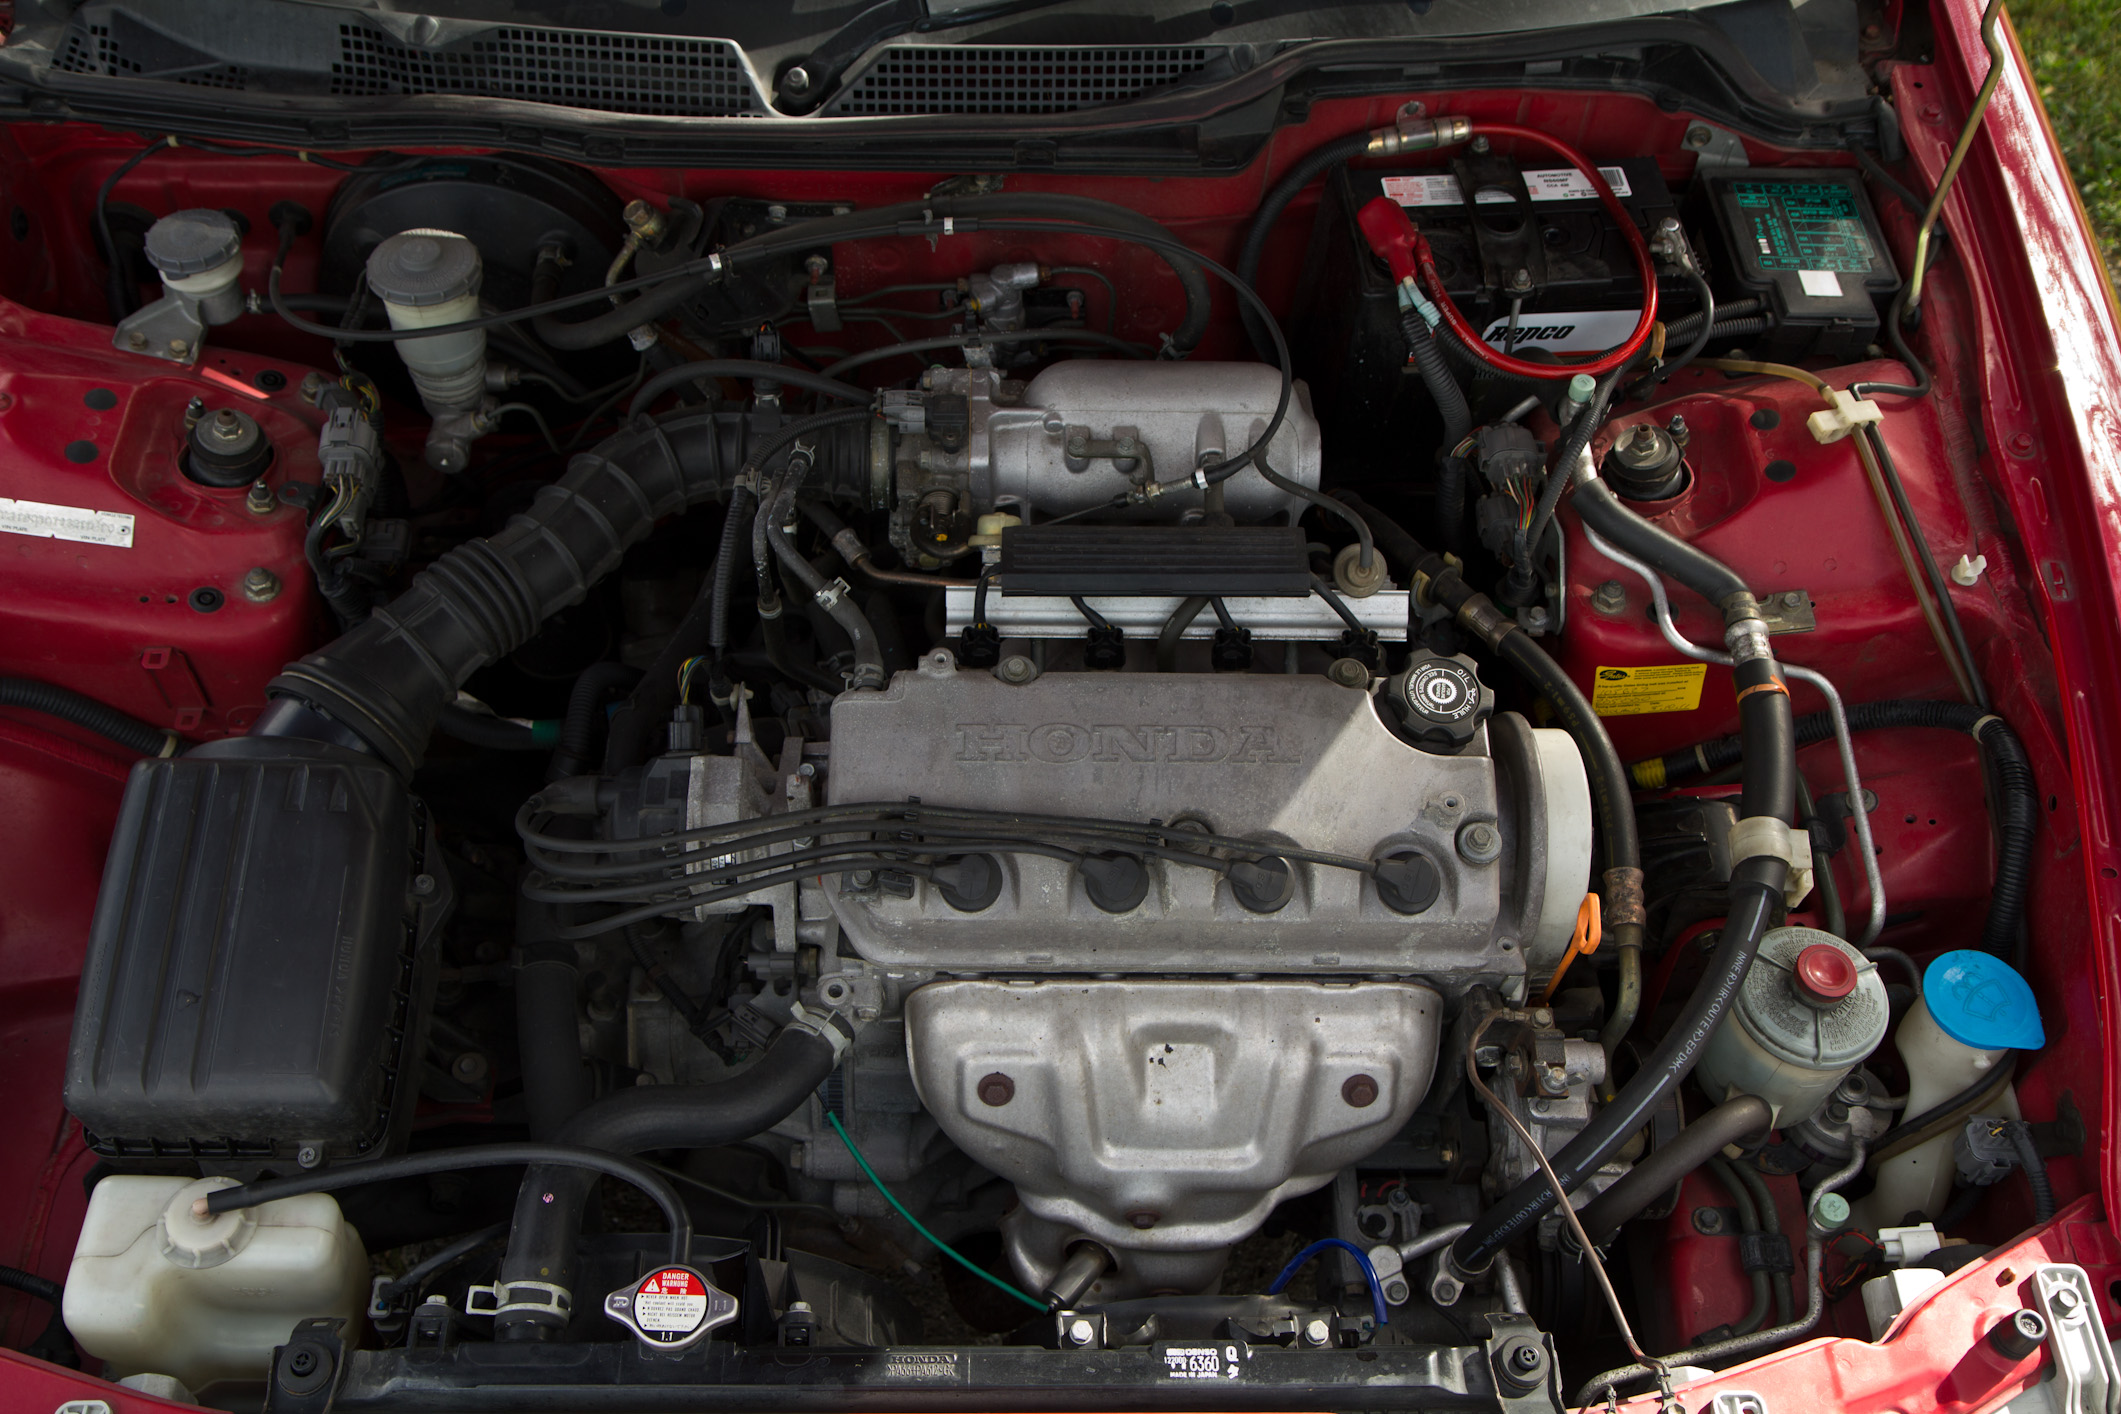 HONDA INTEGRA 1.6 engine